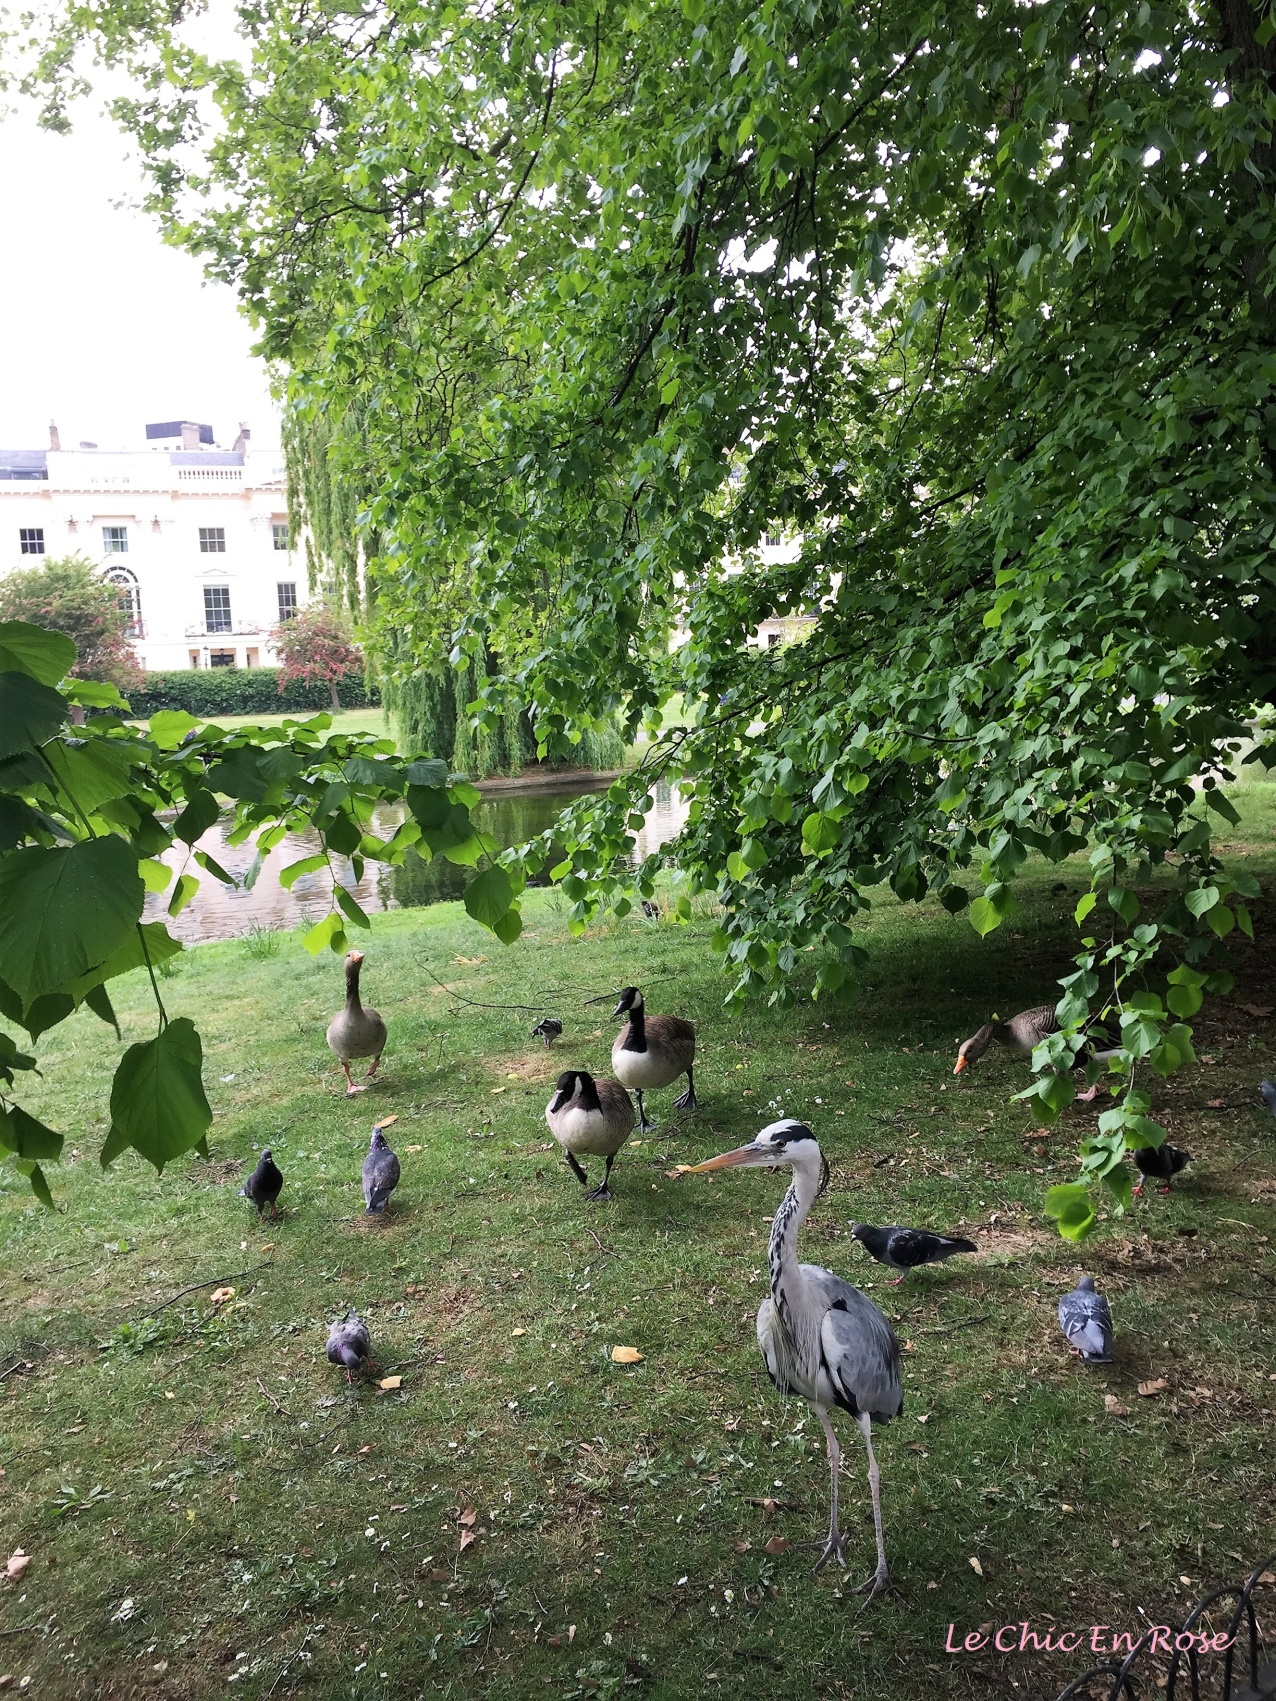 Birdlife in Regent's Park